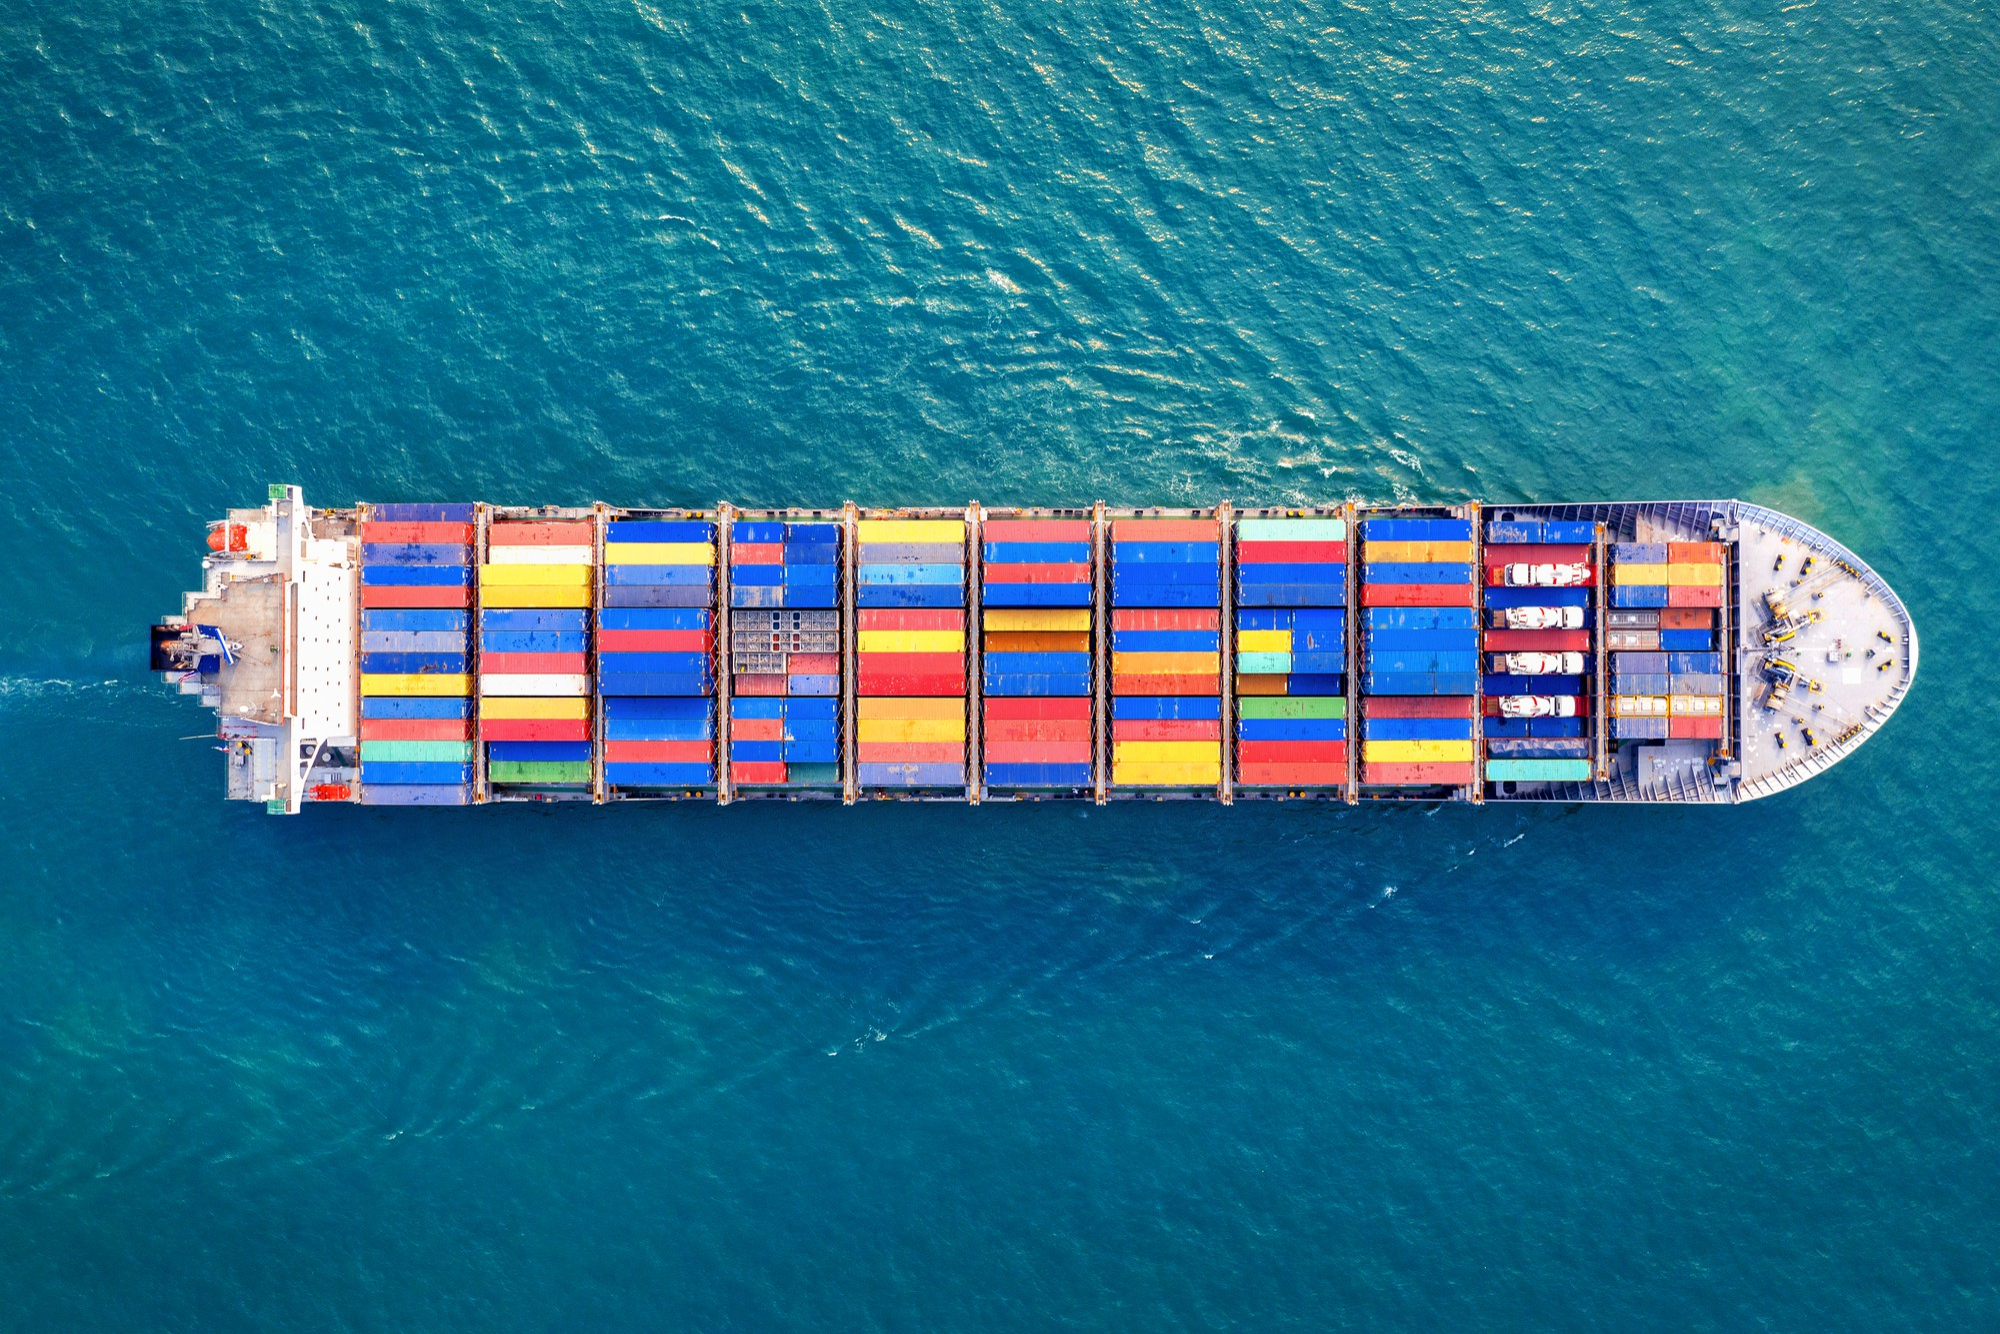 aerial-view-of-container-cargo-ship-in-sea (2)